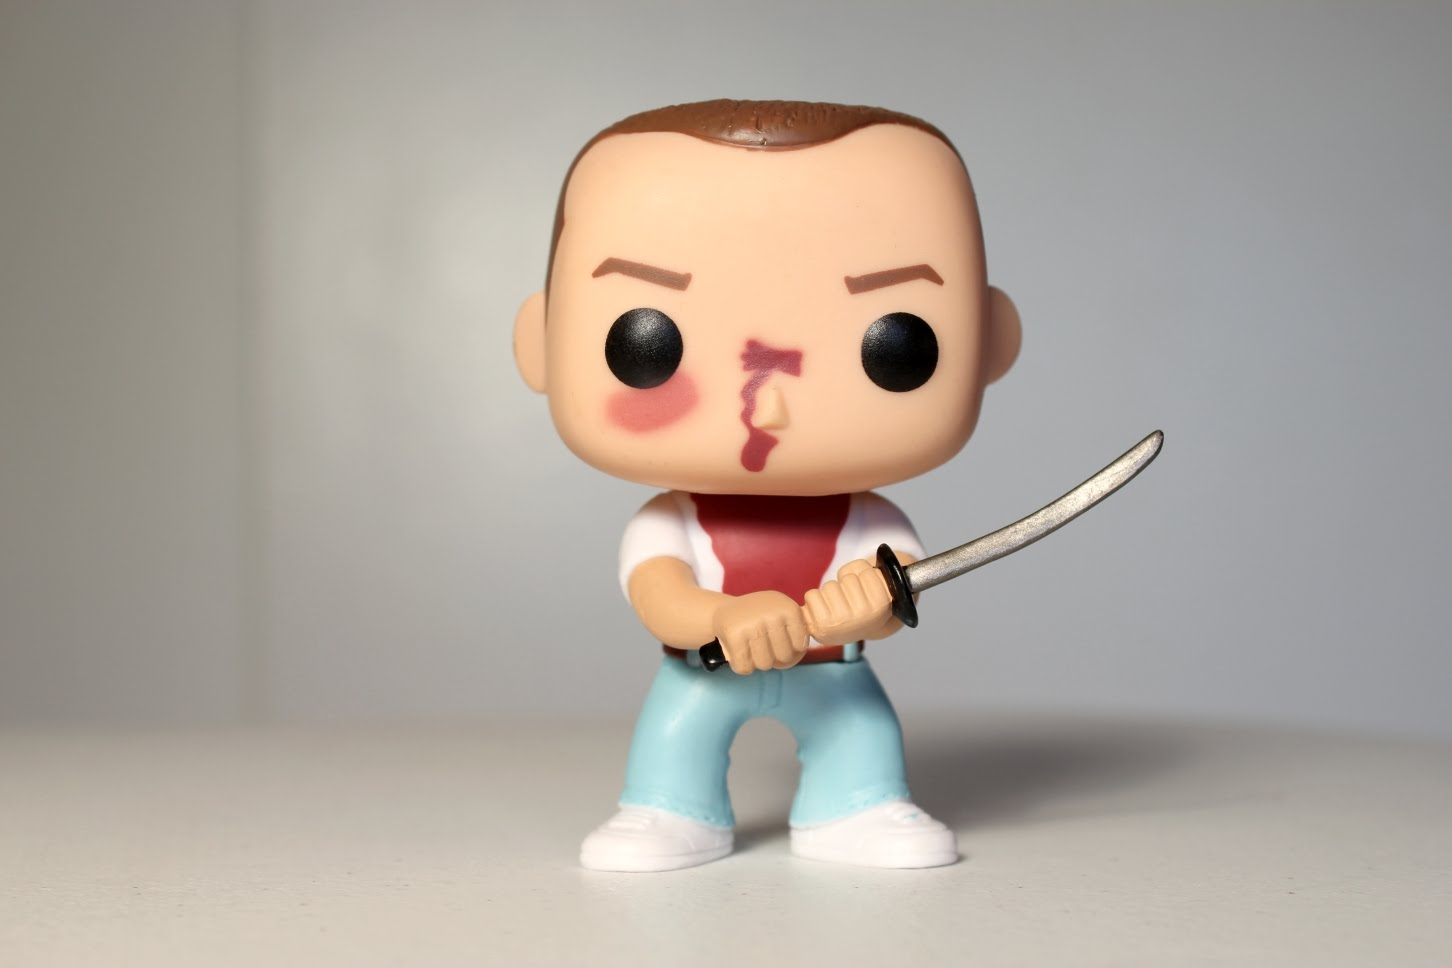 Busco funko Butch (bruce willis) de pulp fiction